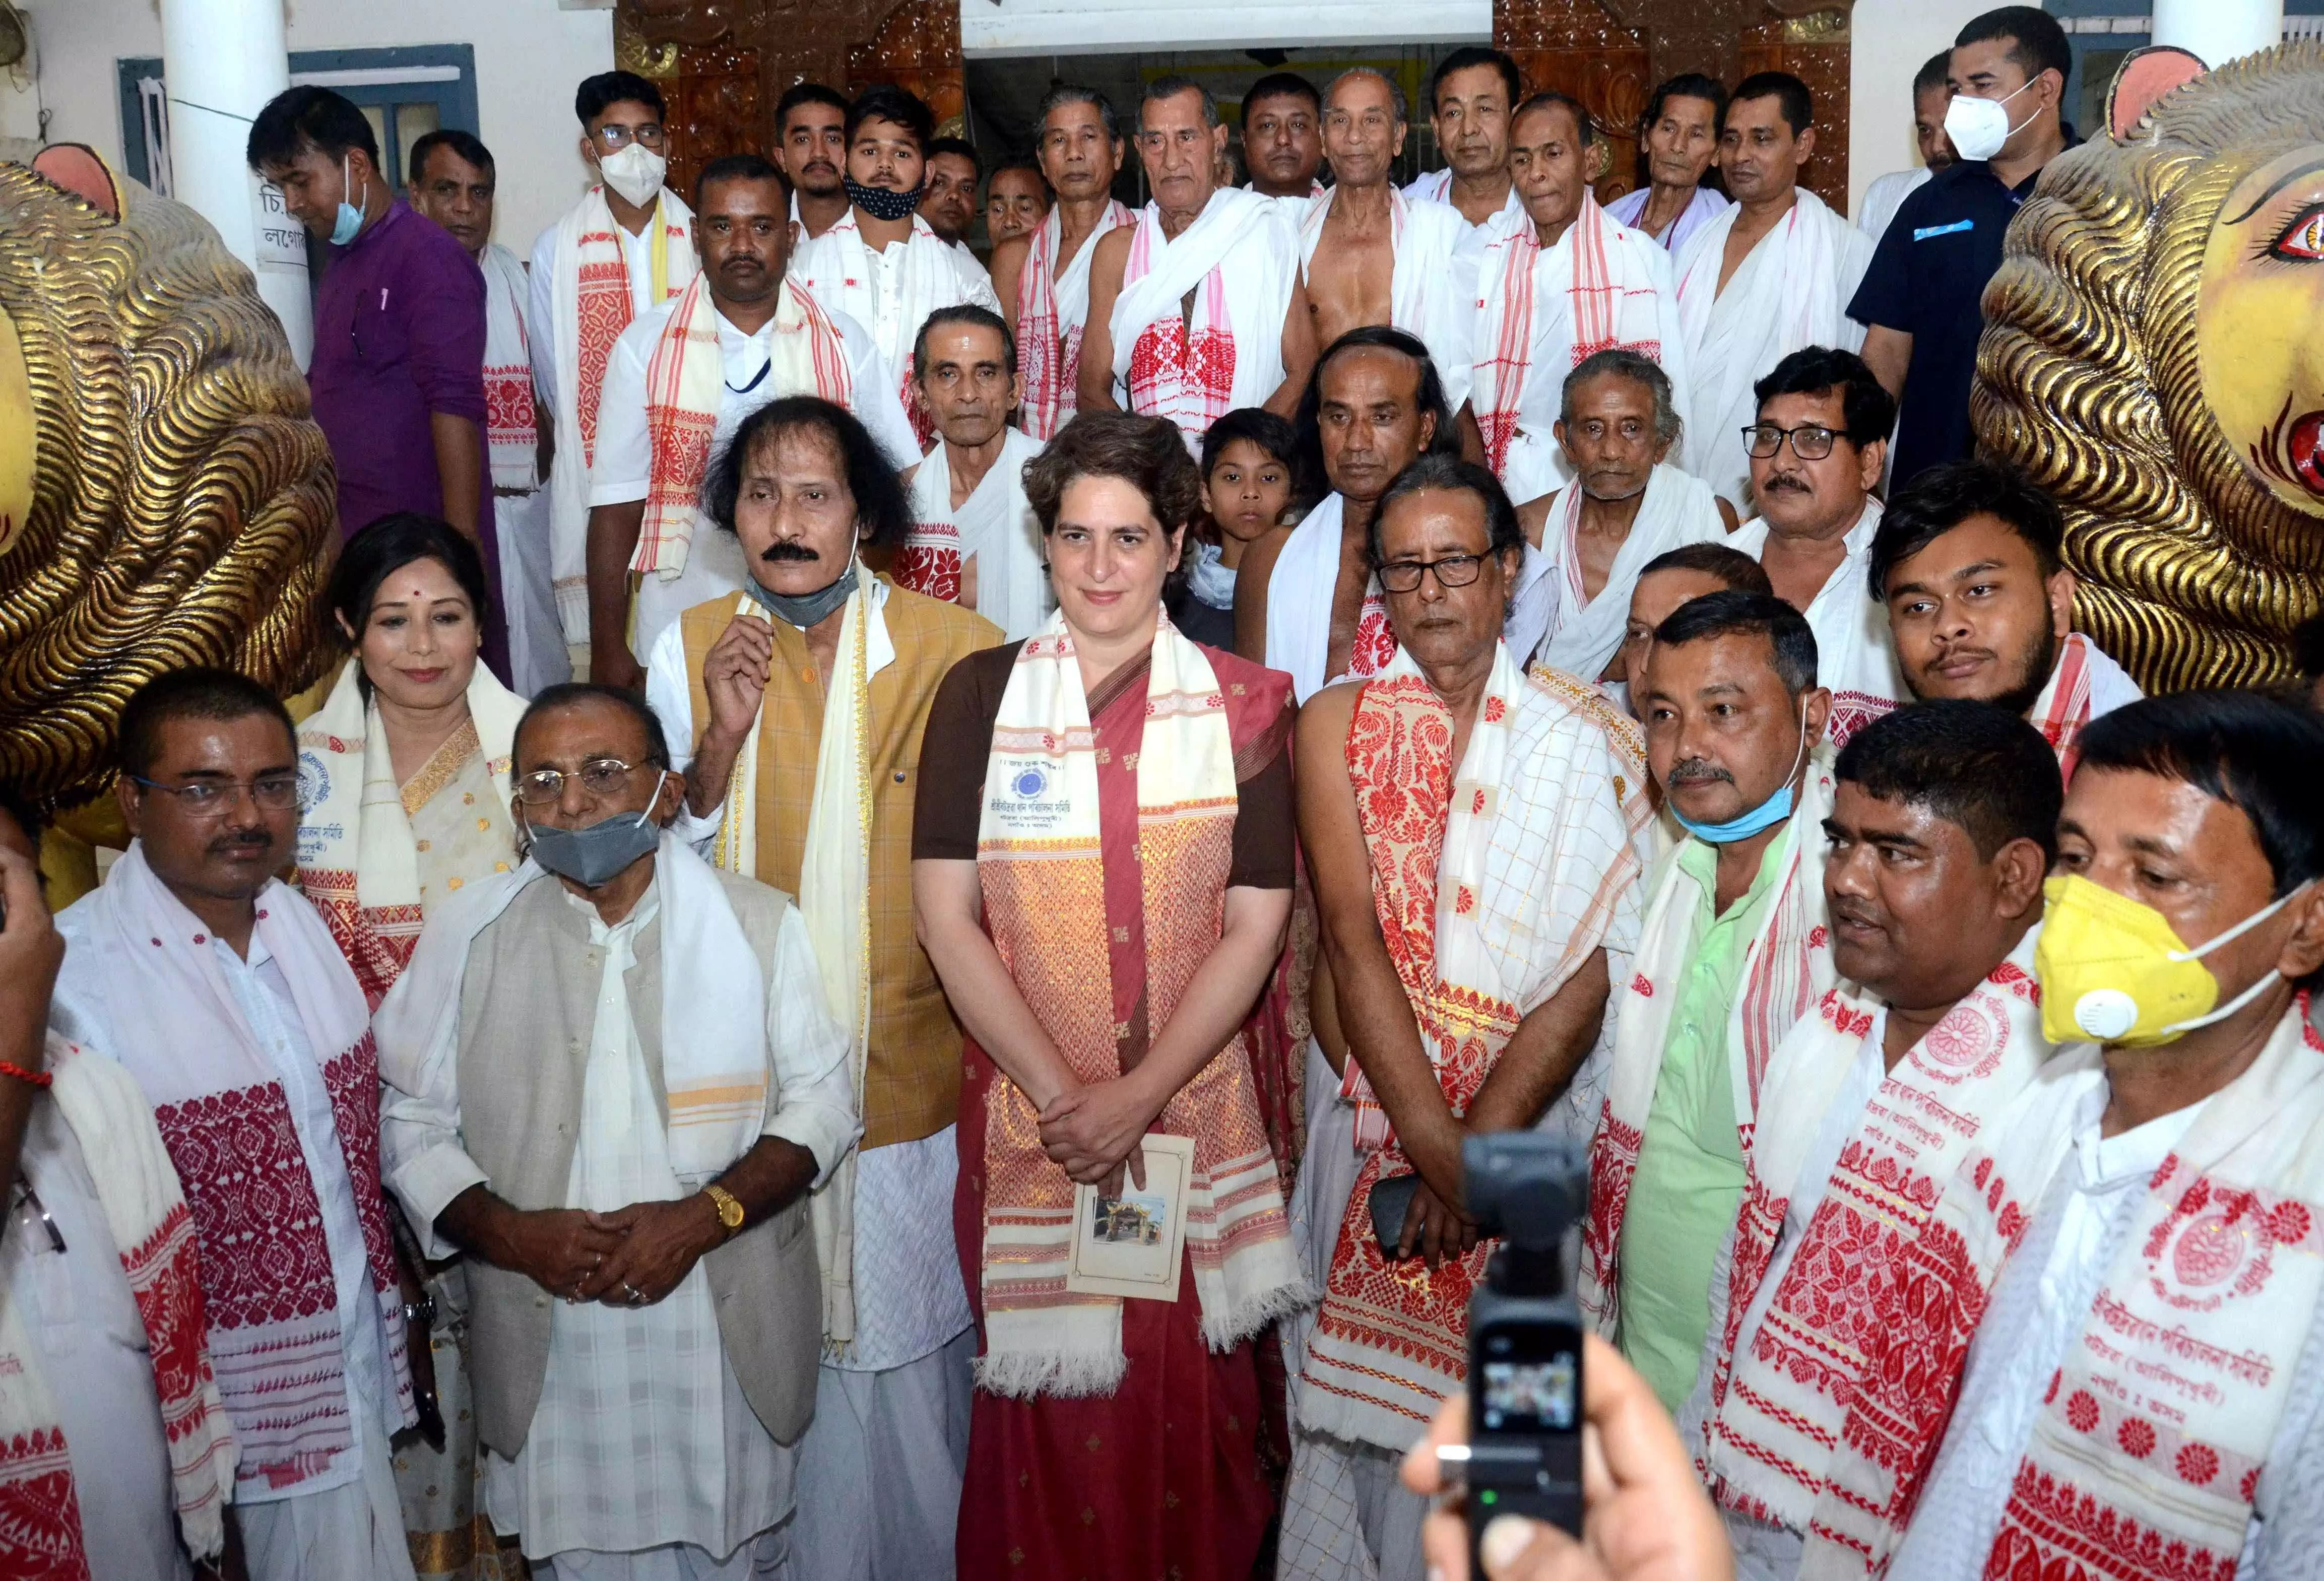 Congress will be single-largest party in Assam: Priyanka Gandhi